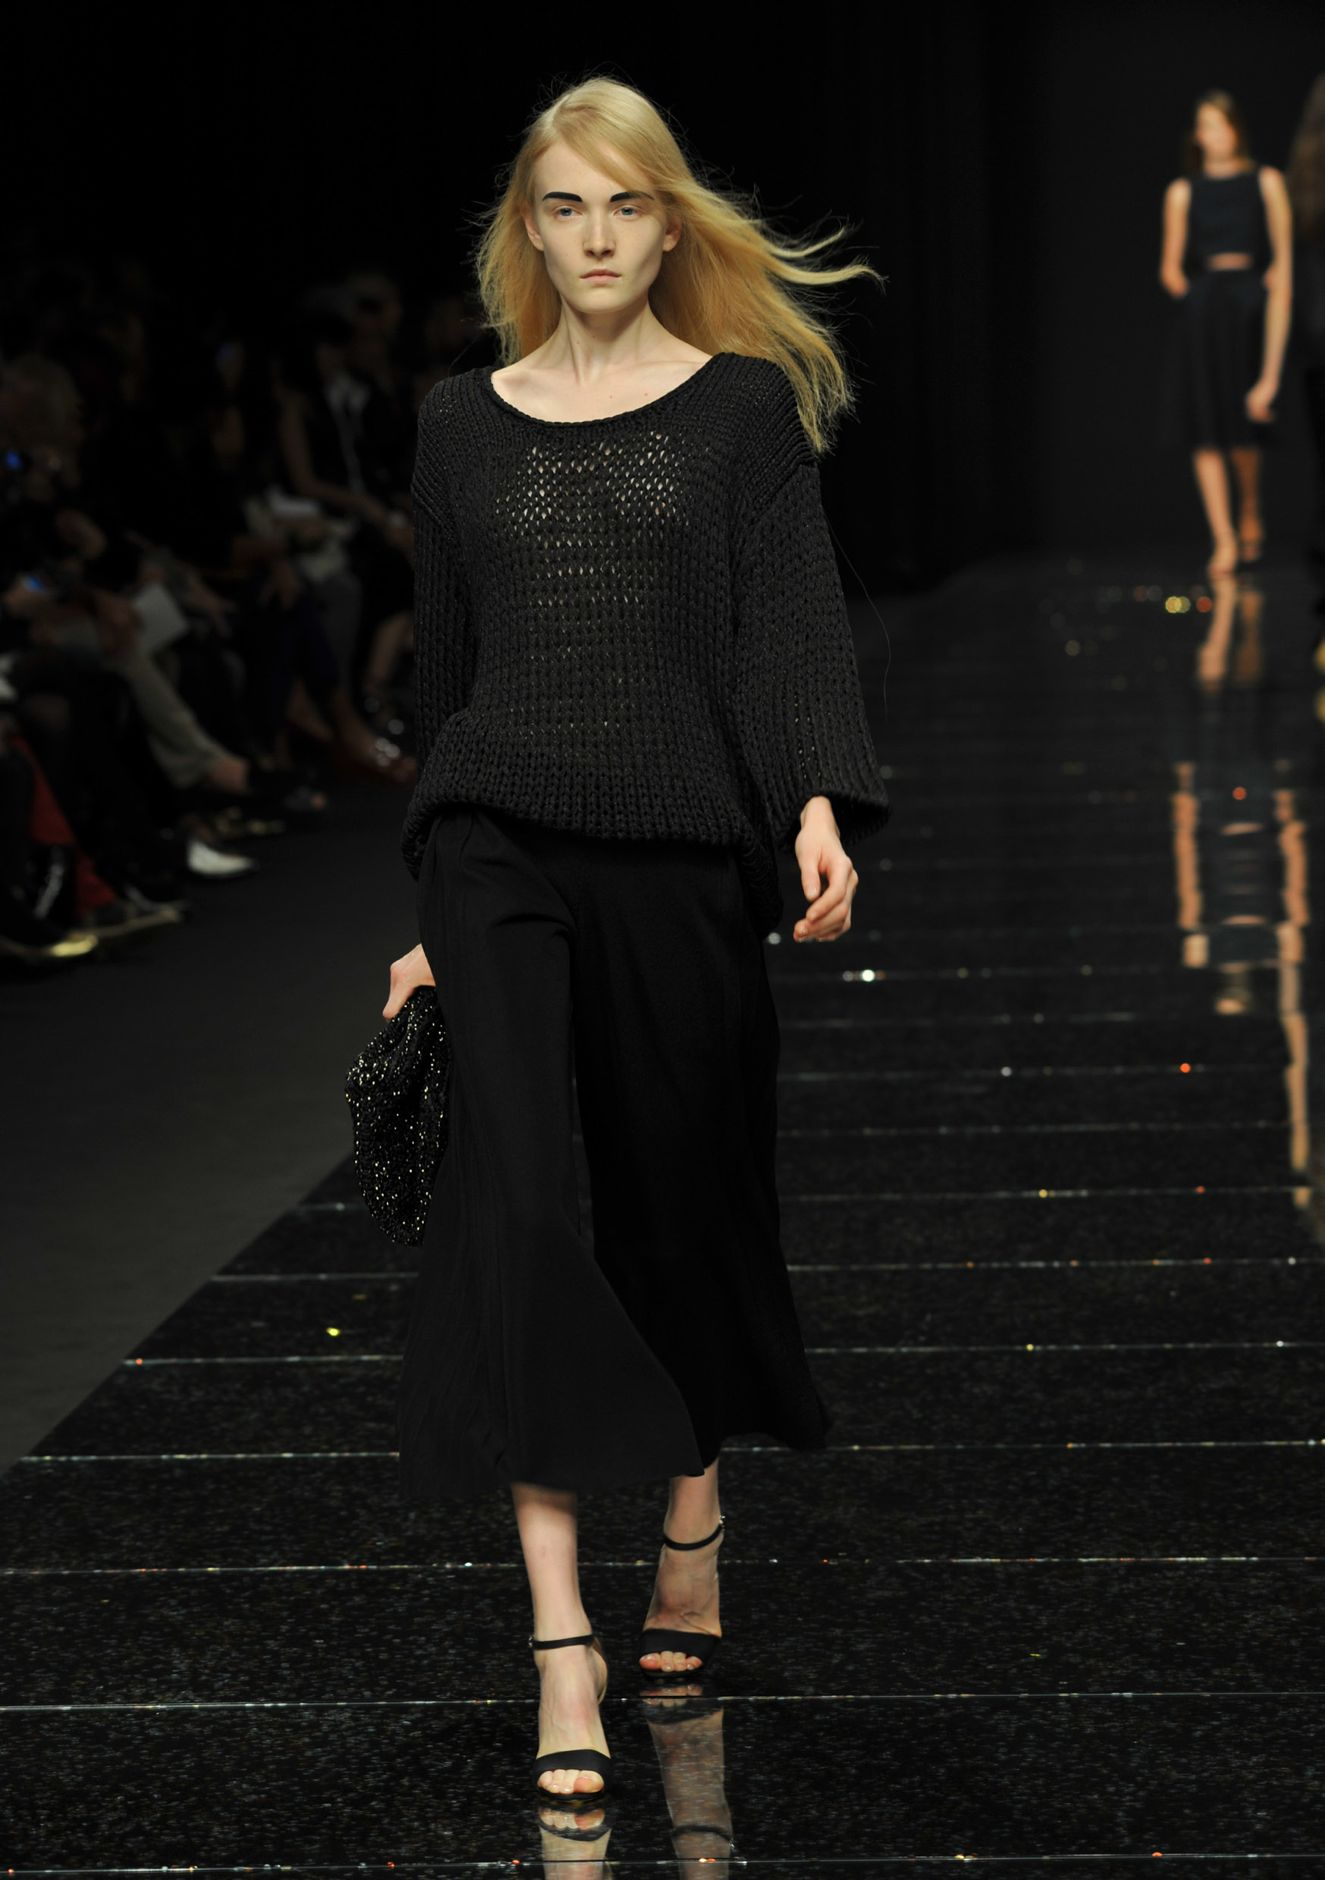 Anteprima Spring Summer 2013 Women Collection Milano Fashion Week Fashion Show